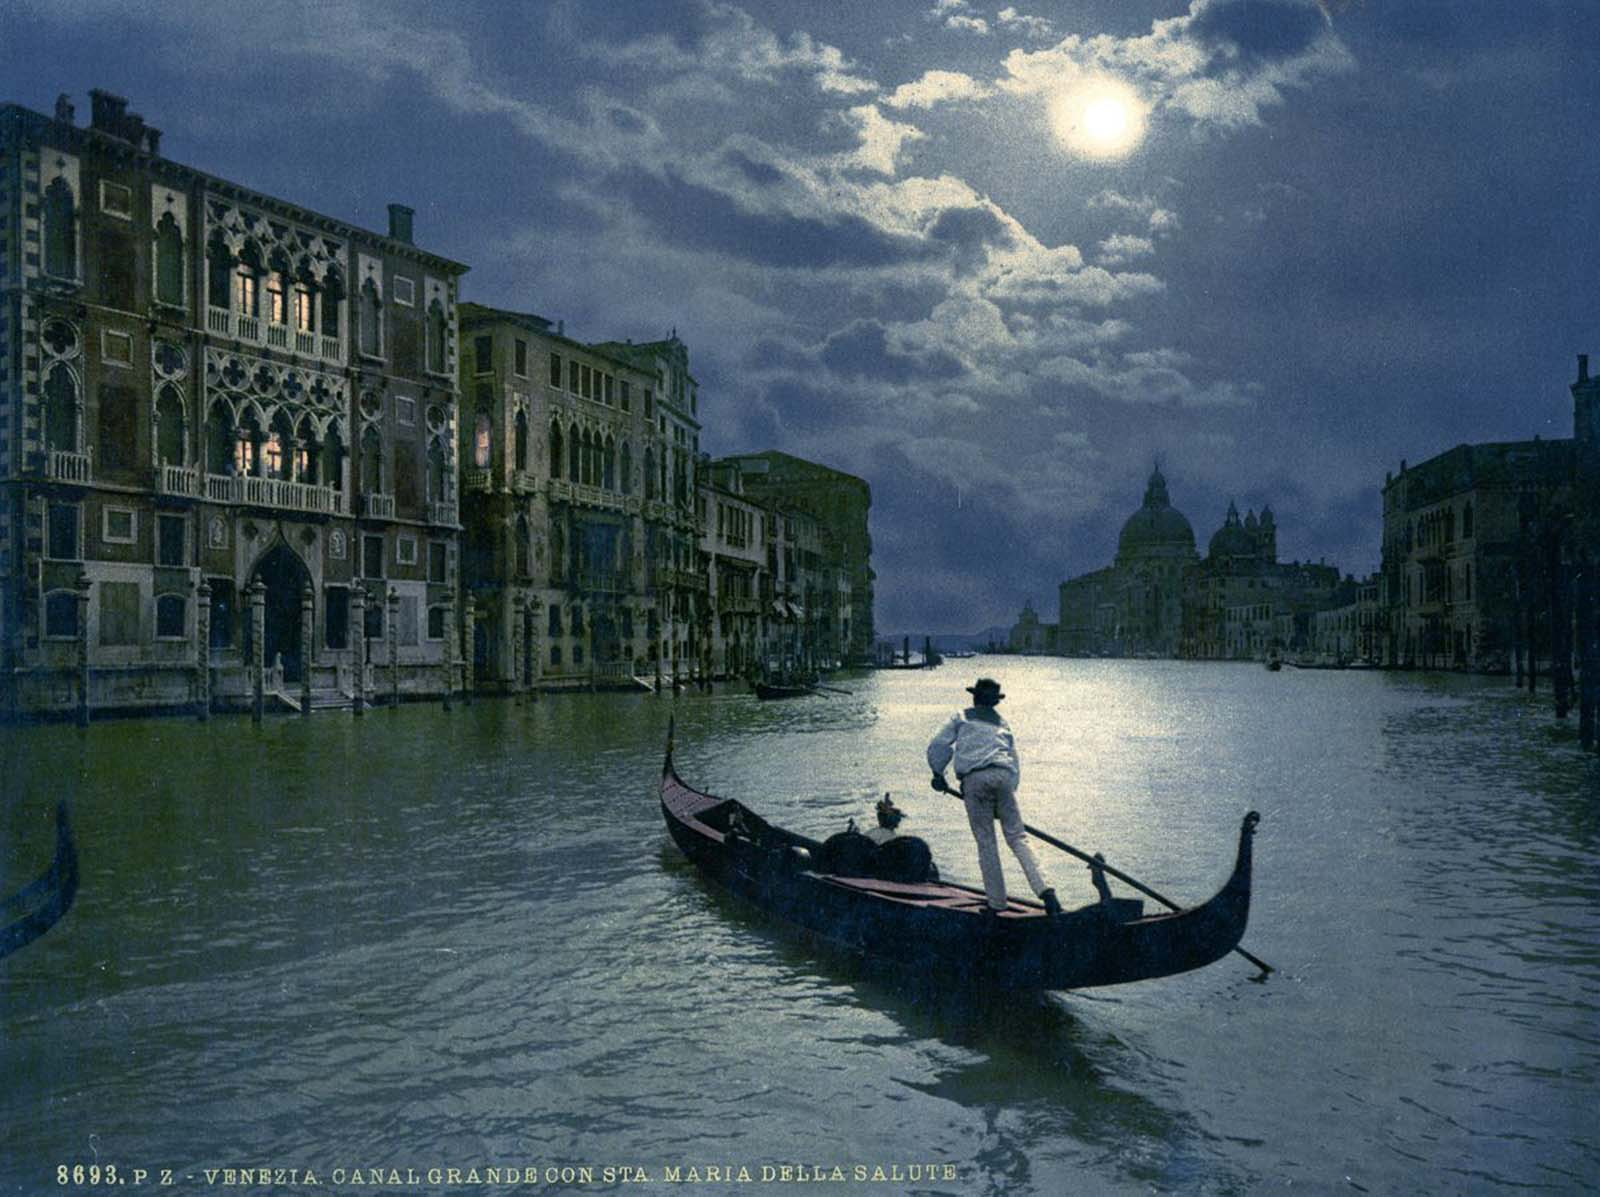 venice-in-beautiful-old-color-images-1890_1.jpg